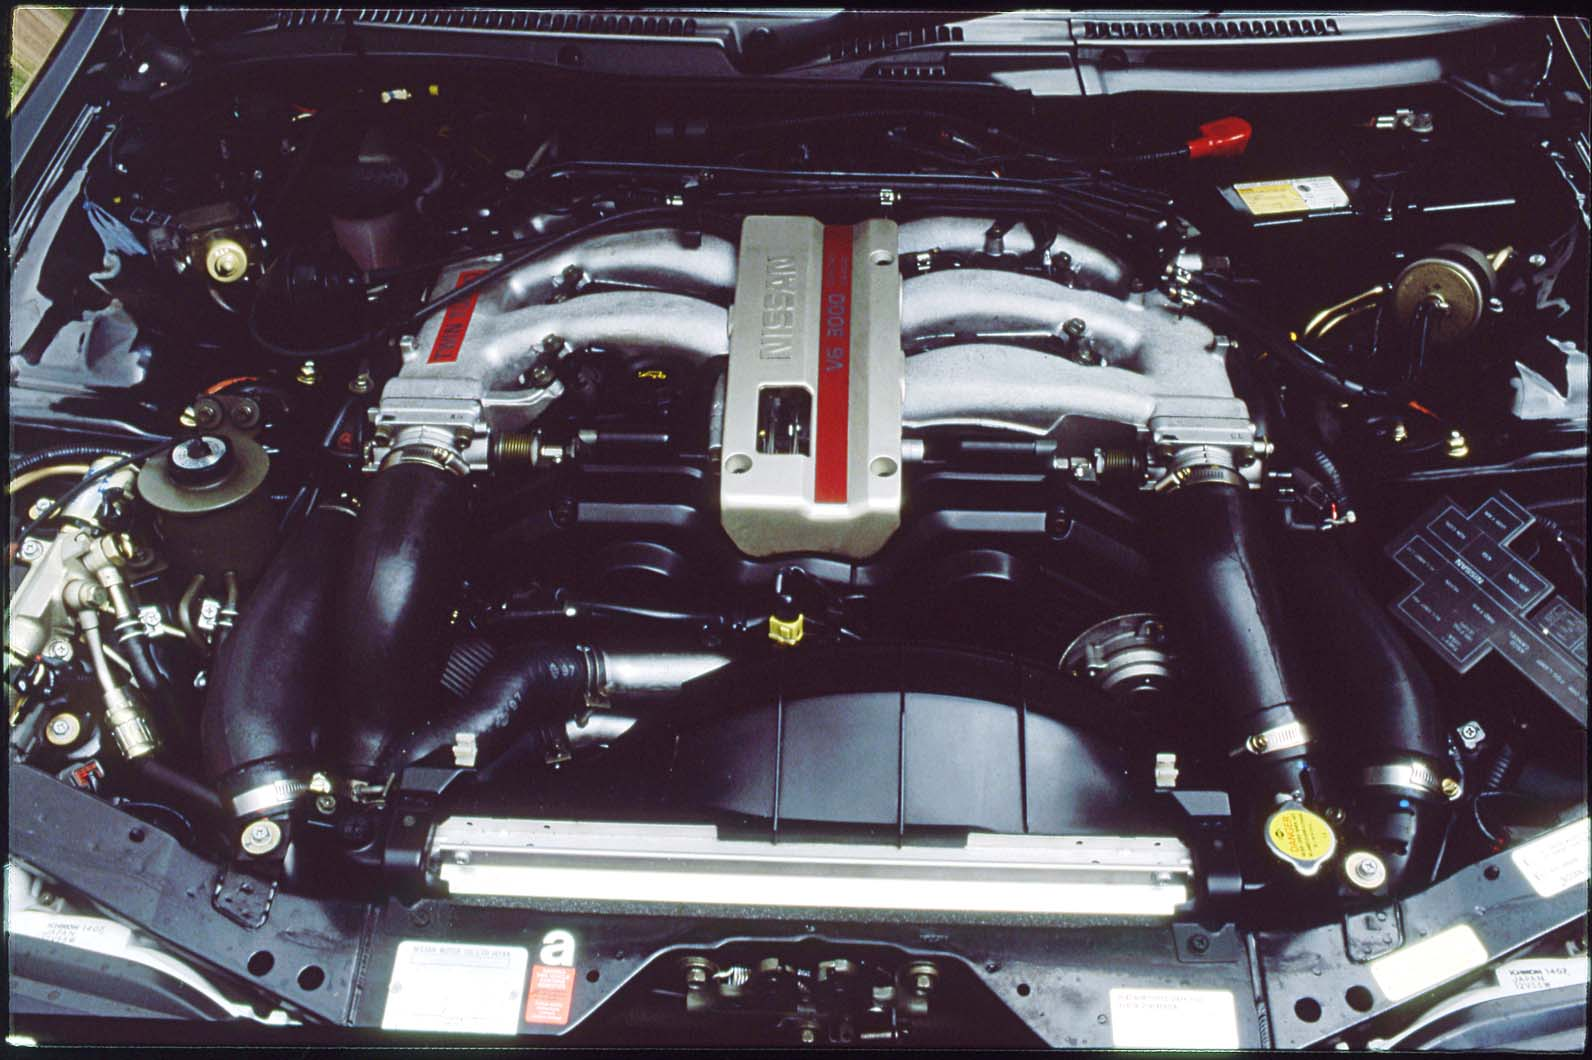 Used Car Buying Guide Nissan 300zx Autocar Fuse Box Uk Cooling System The Engine Runs Very Hot But Has A Small Radiator So Regular Flushing And Fluid Changes Are Important Check Condition Of